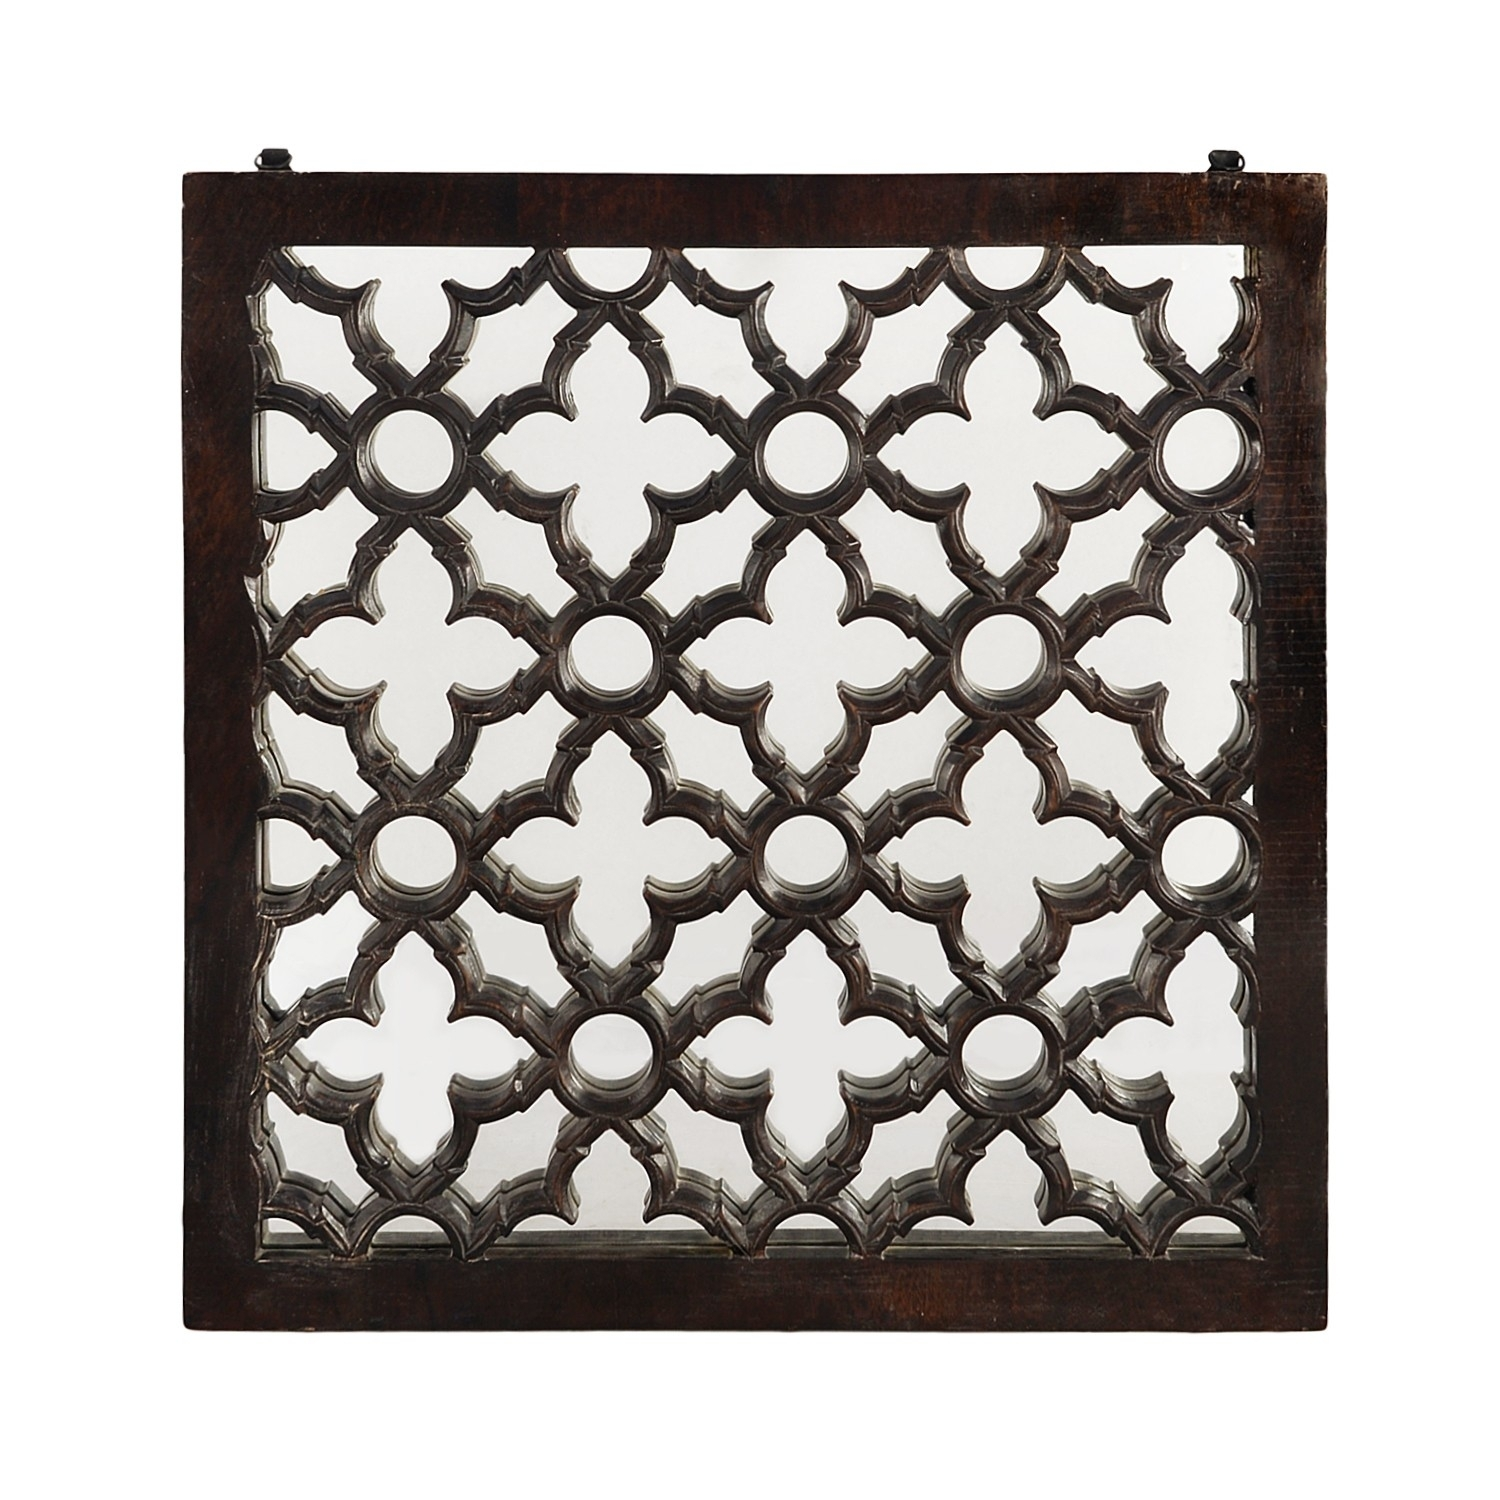 Moroccan Wall Art | The Yellow Door Store With Regard To Moroccan Wall Art (View 4 of 20)